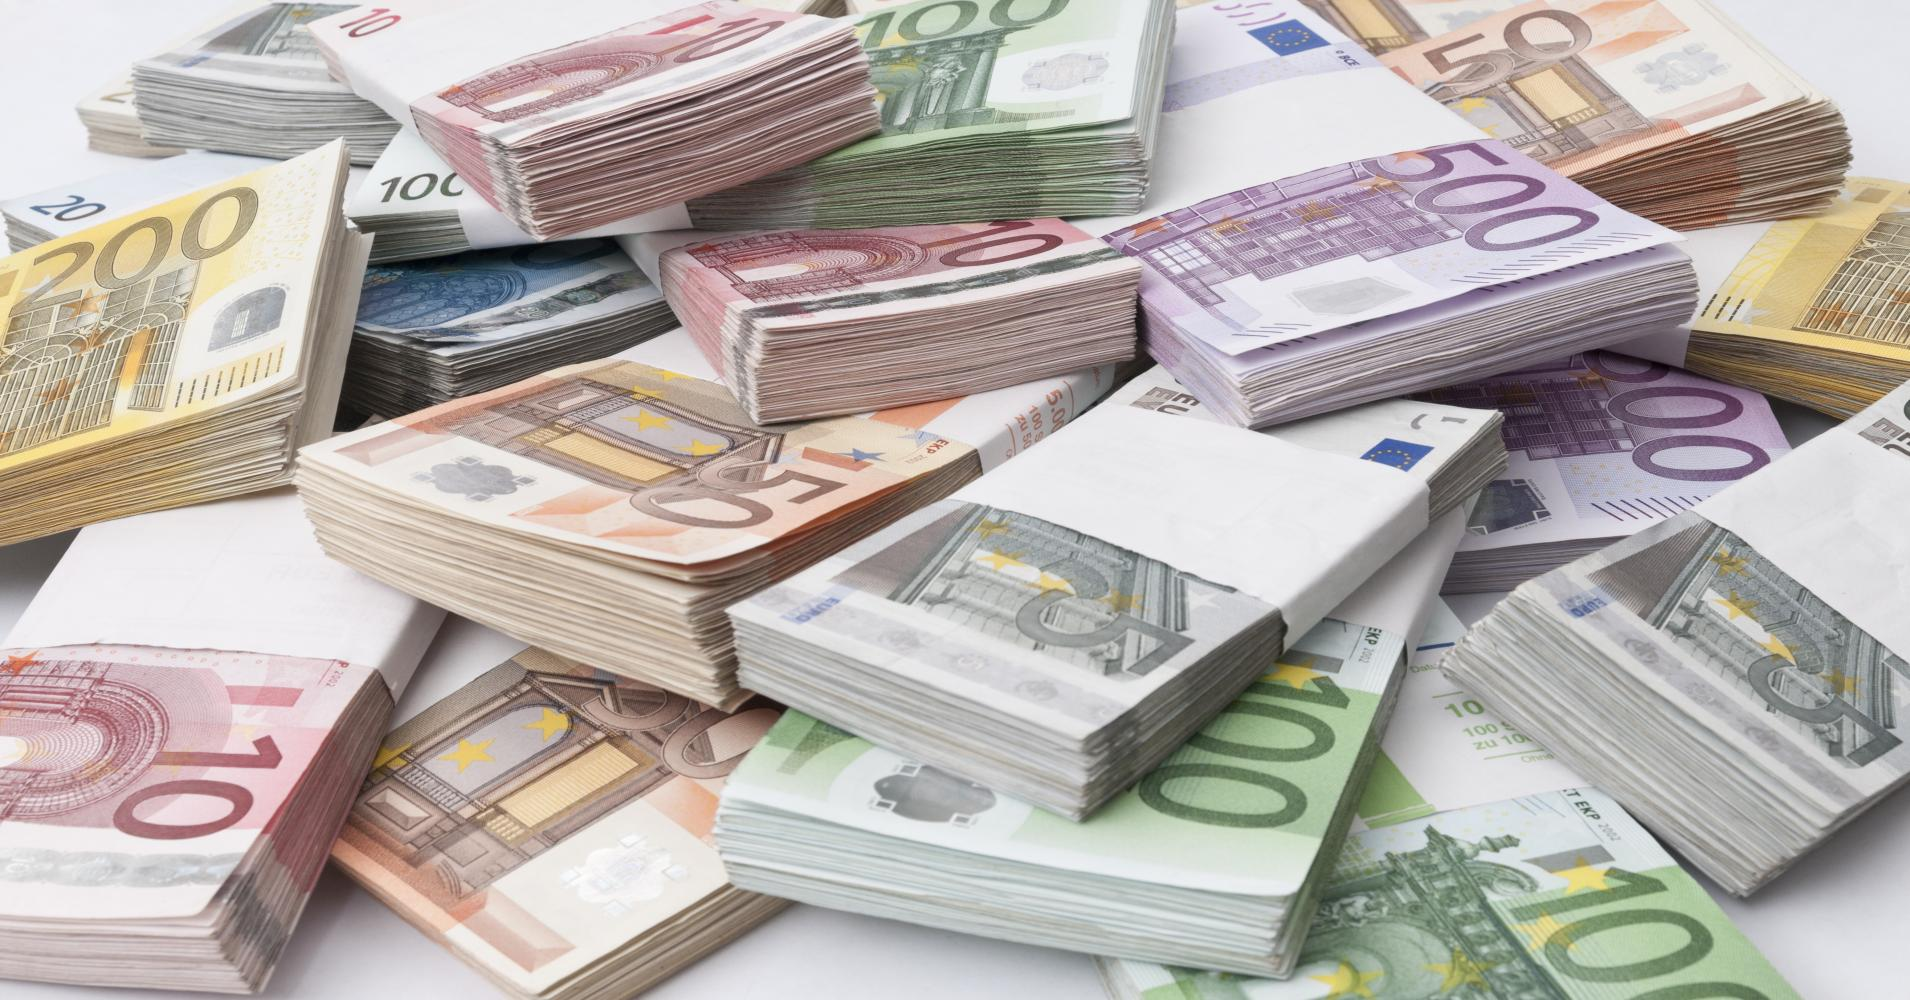 Albanians have more foreign currency in their hands